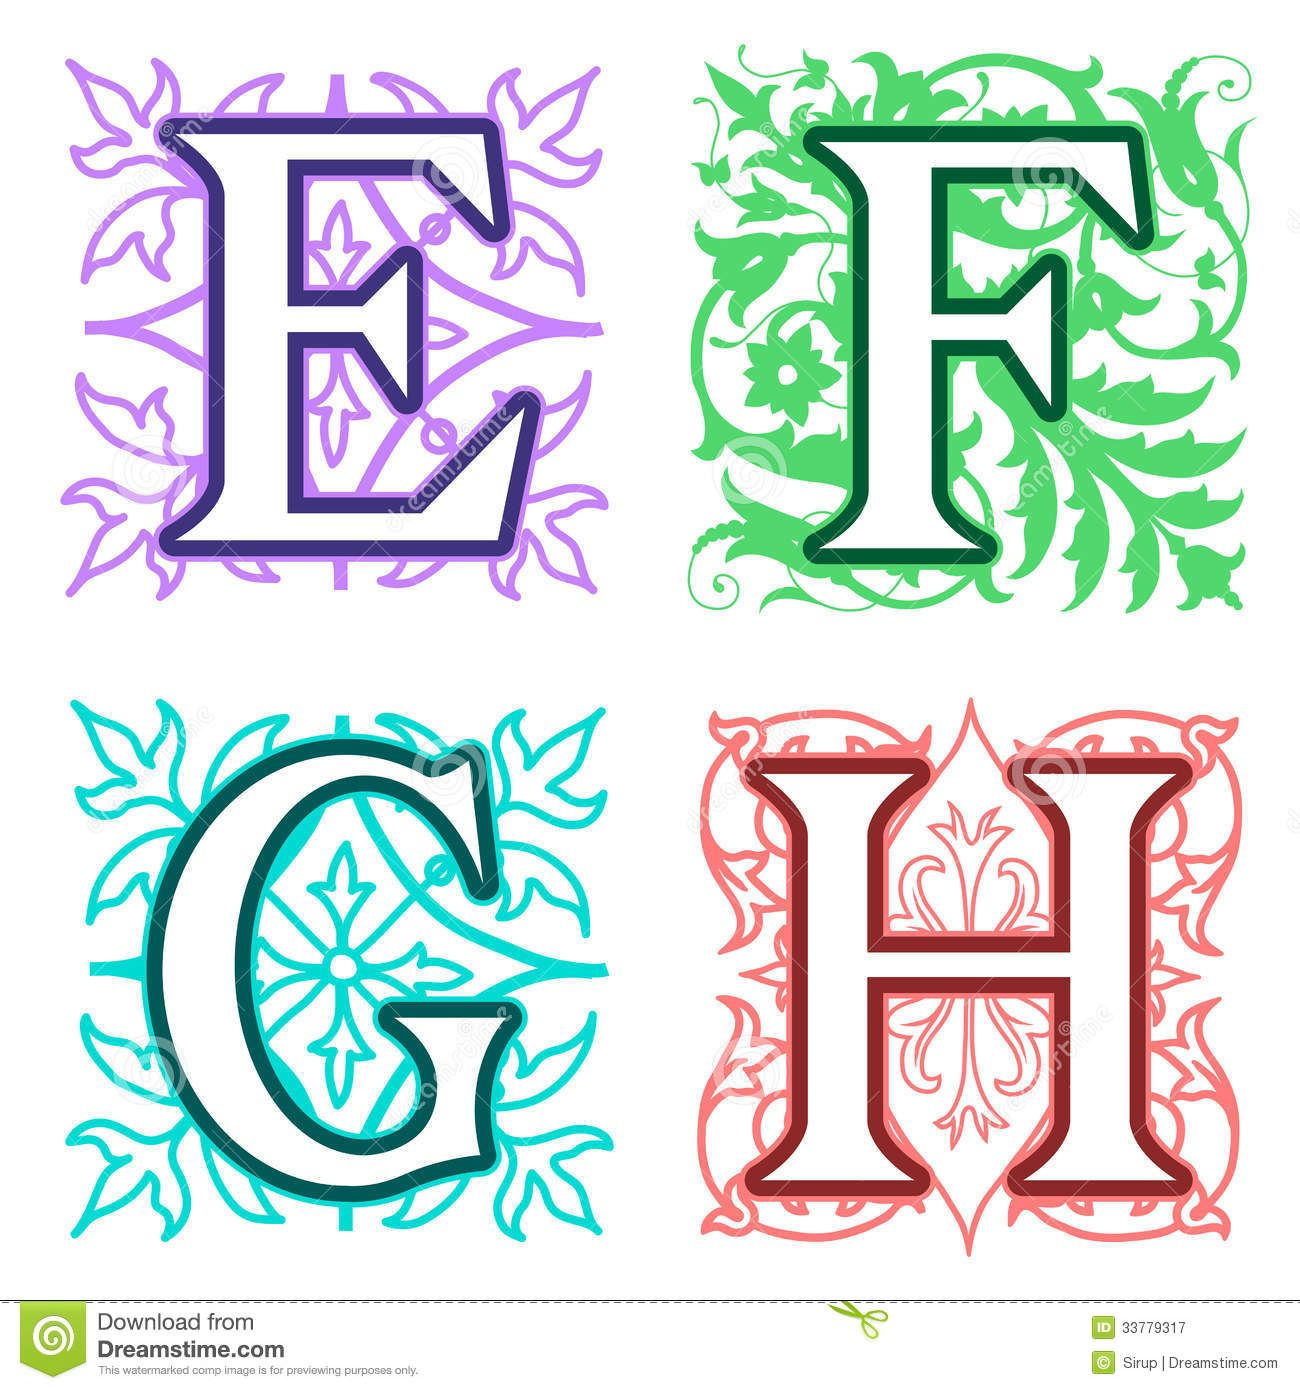 h and e letters Google Search TRUE Pinterest